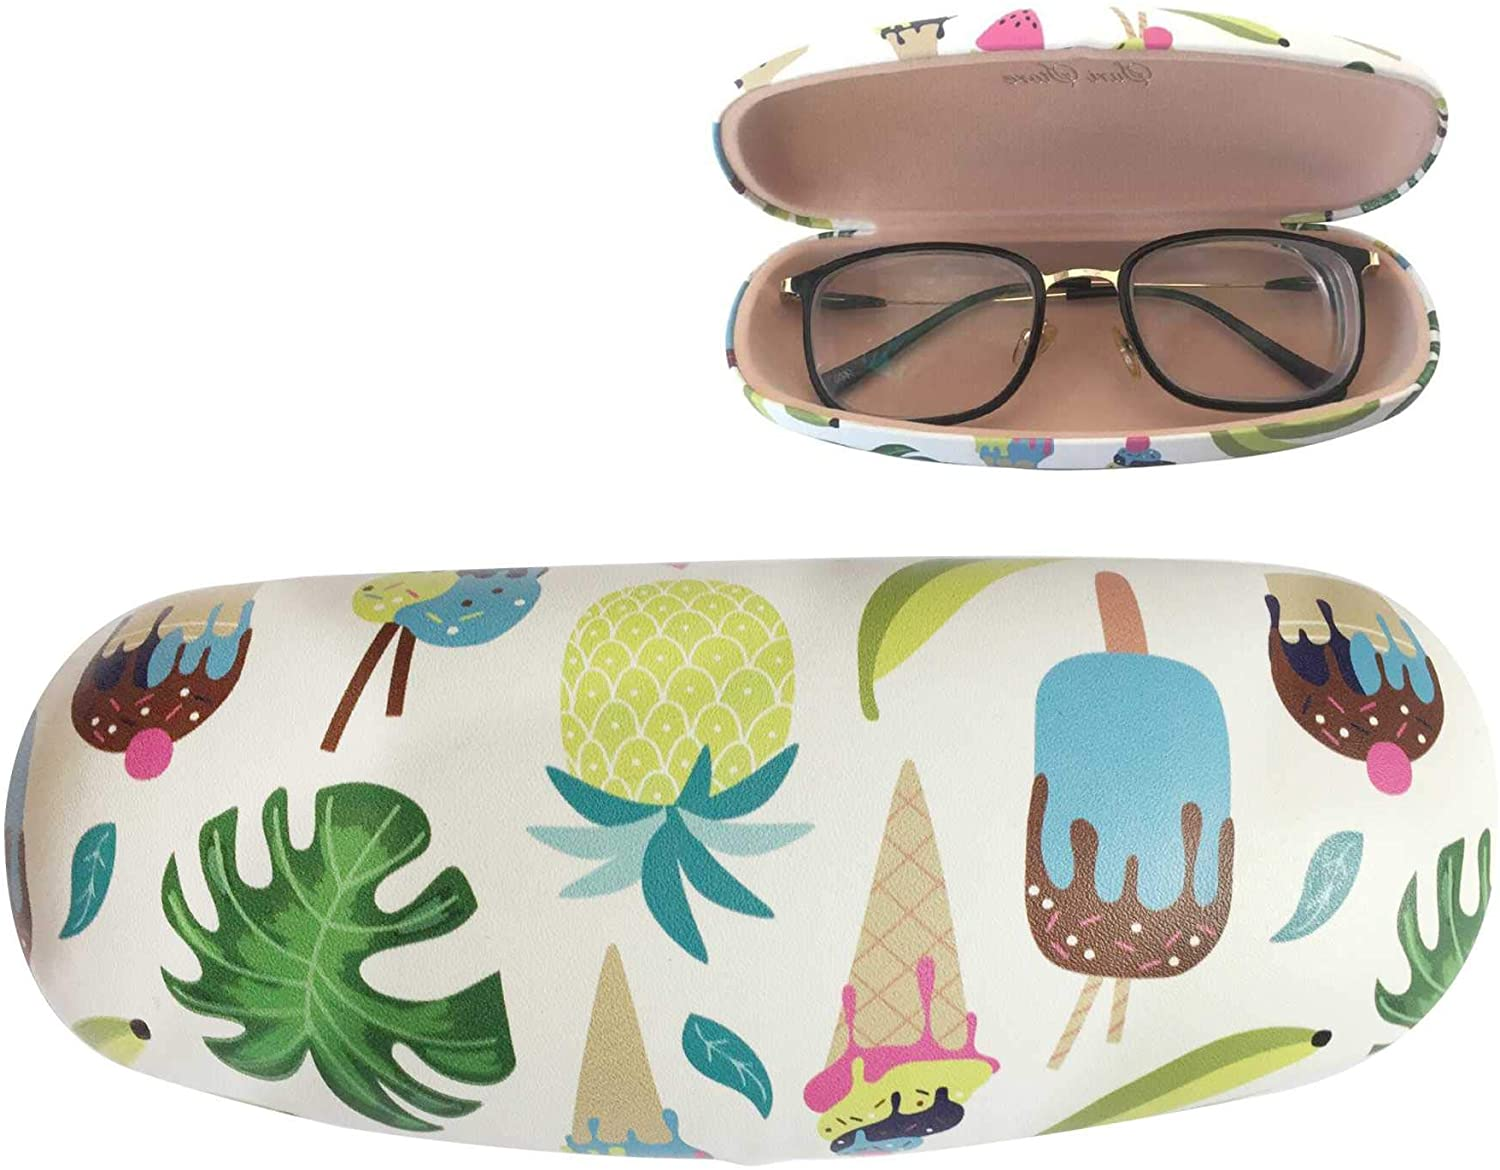 Eyeglasses Clamshell Hard Case Cactus Printed Cute Protective Holder